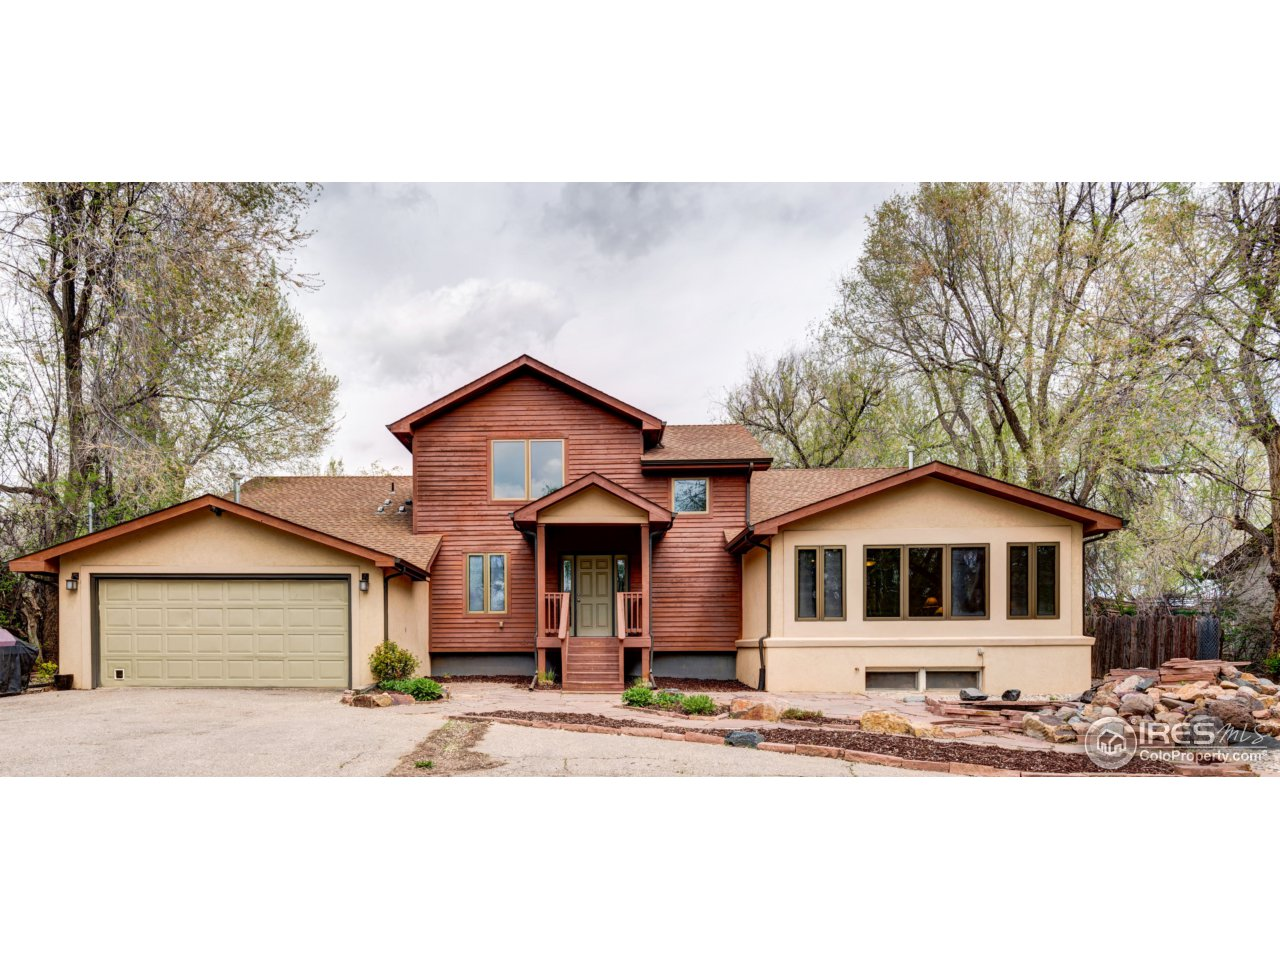 2536 W Mulberry St, Fort Collins CO 80521